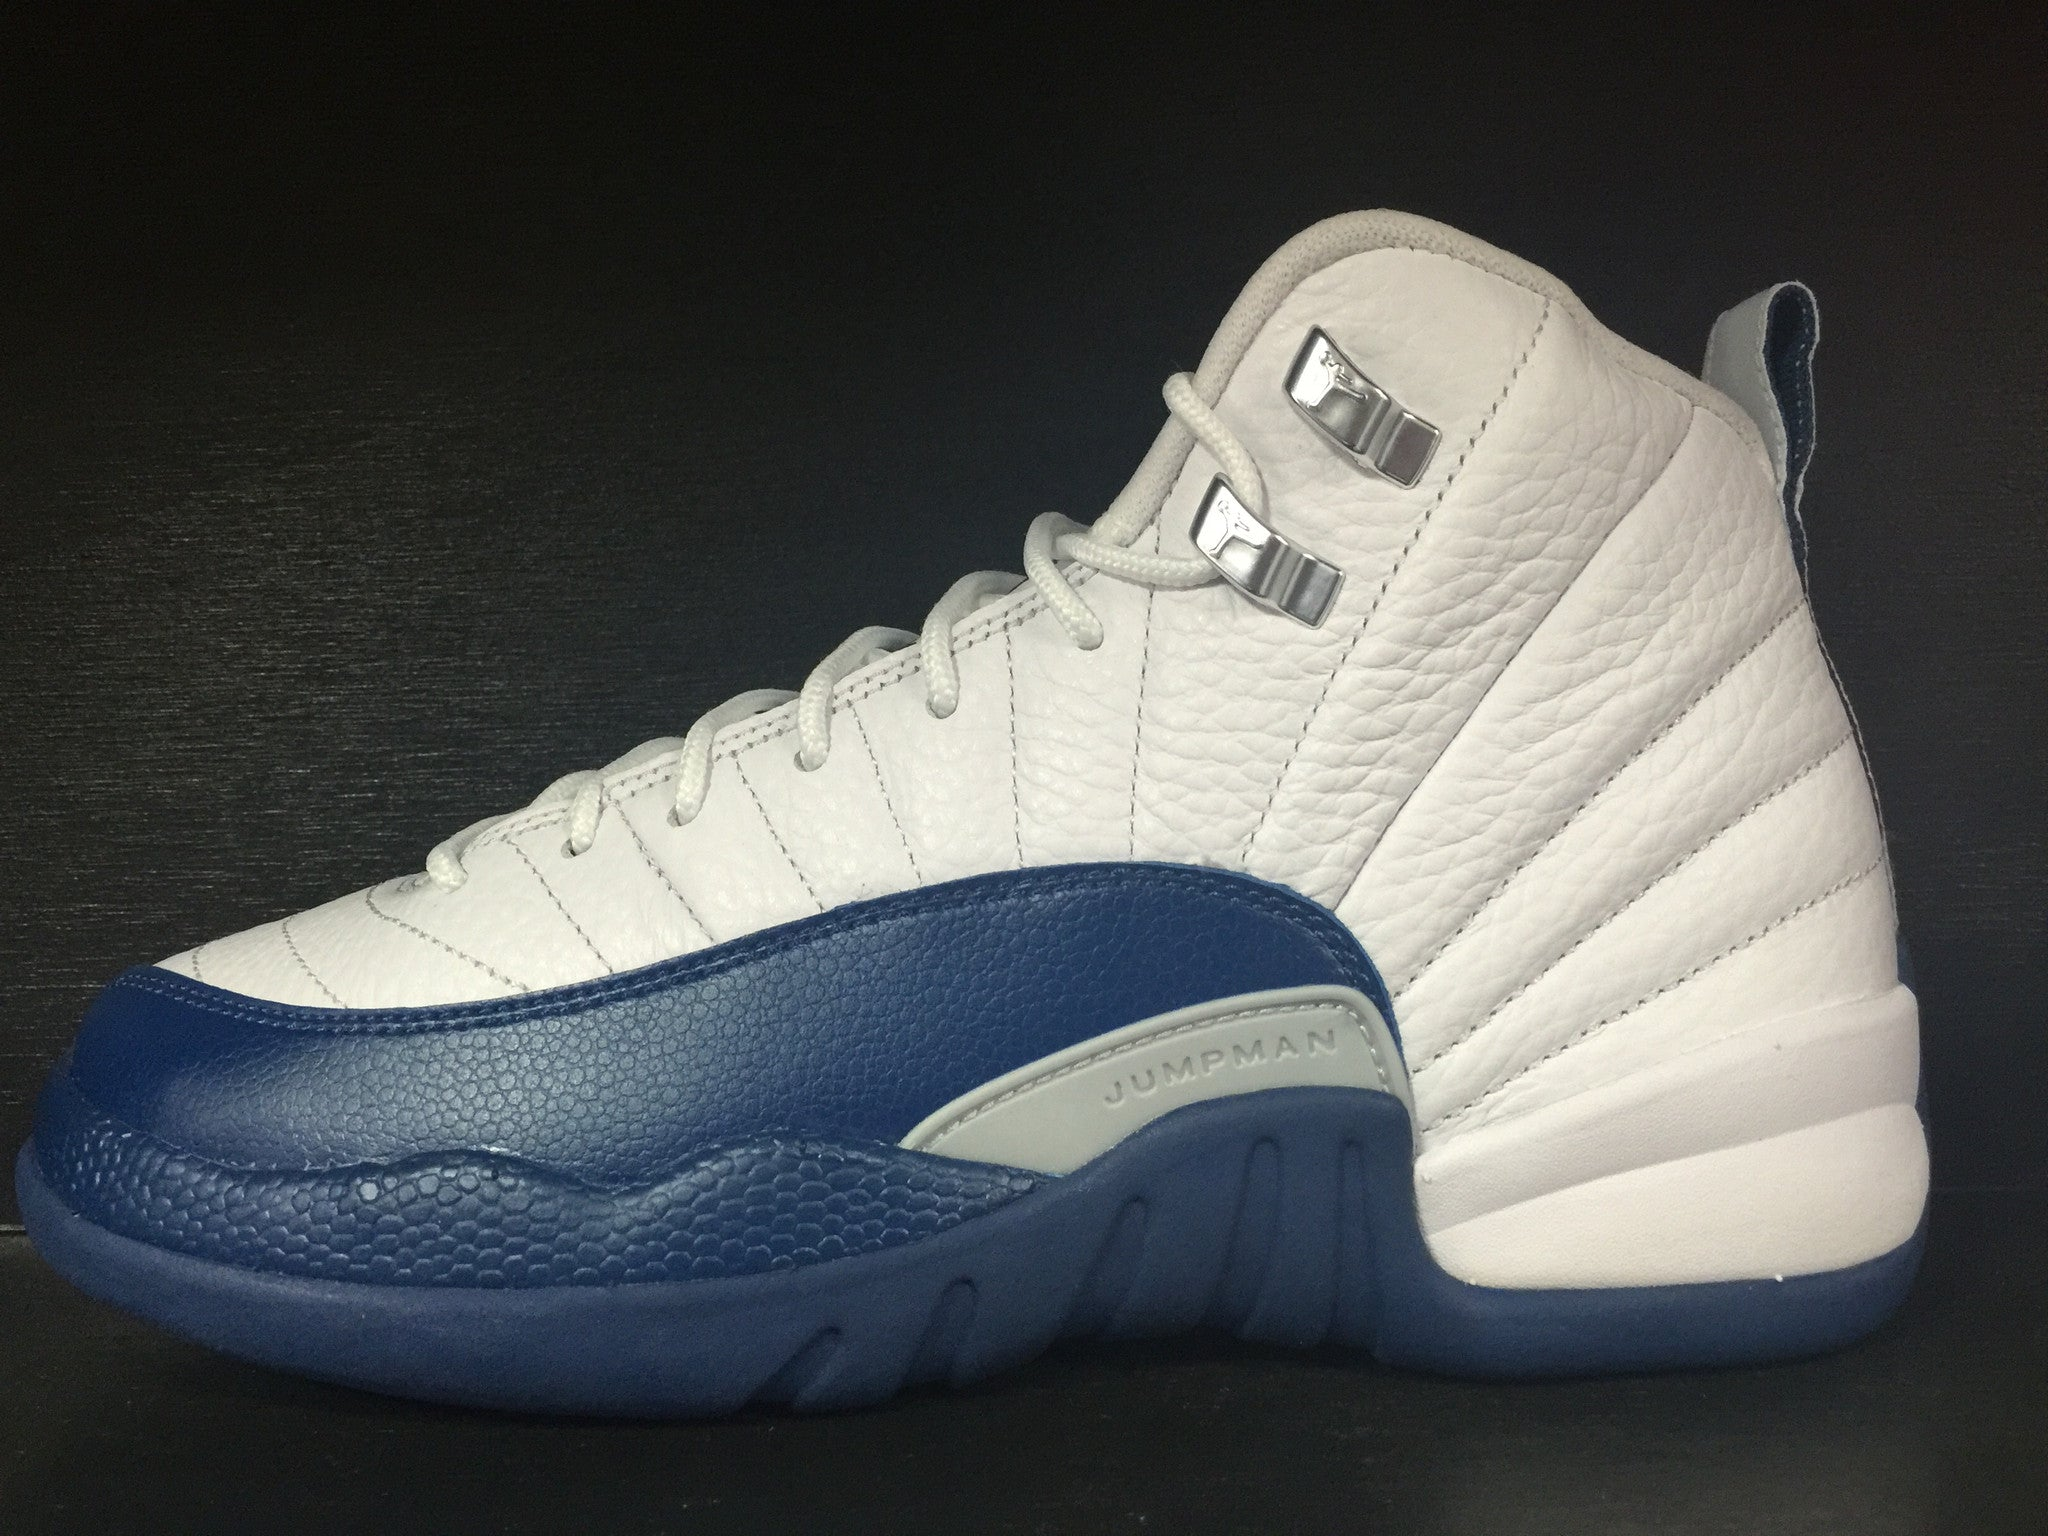 Air Jordan 12 Retro 'French Blue' GS